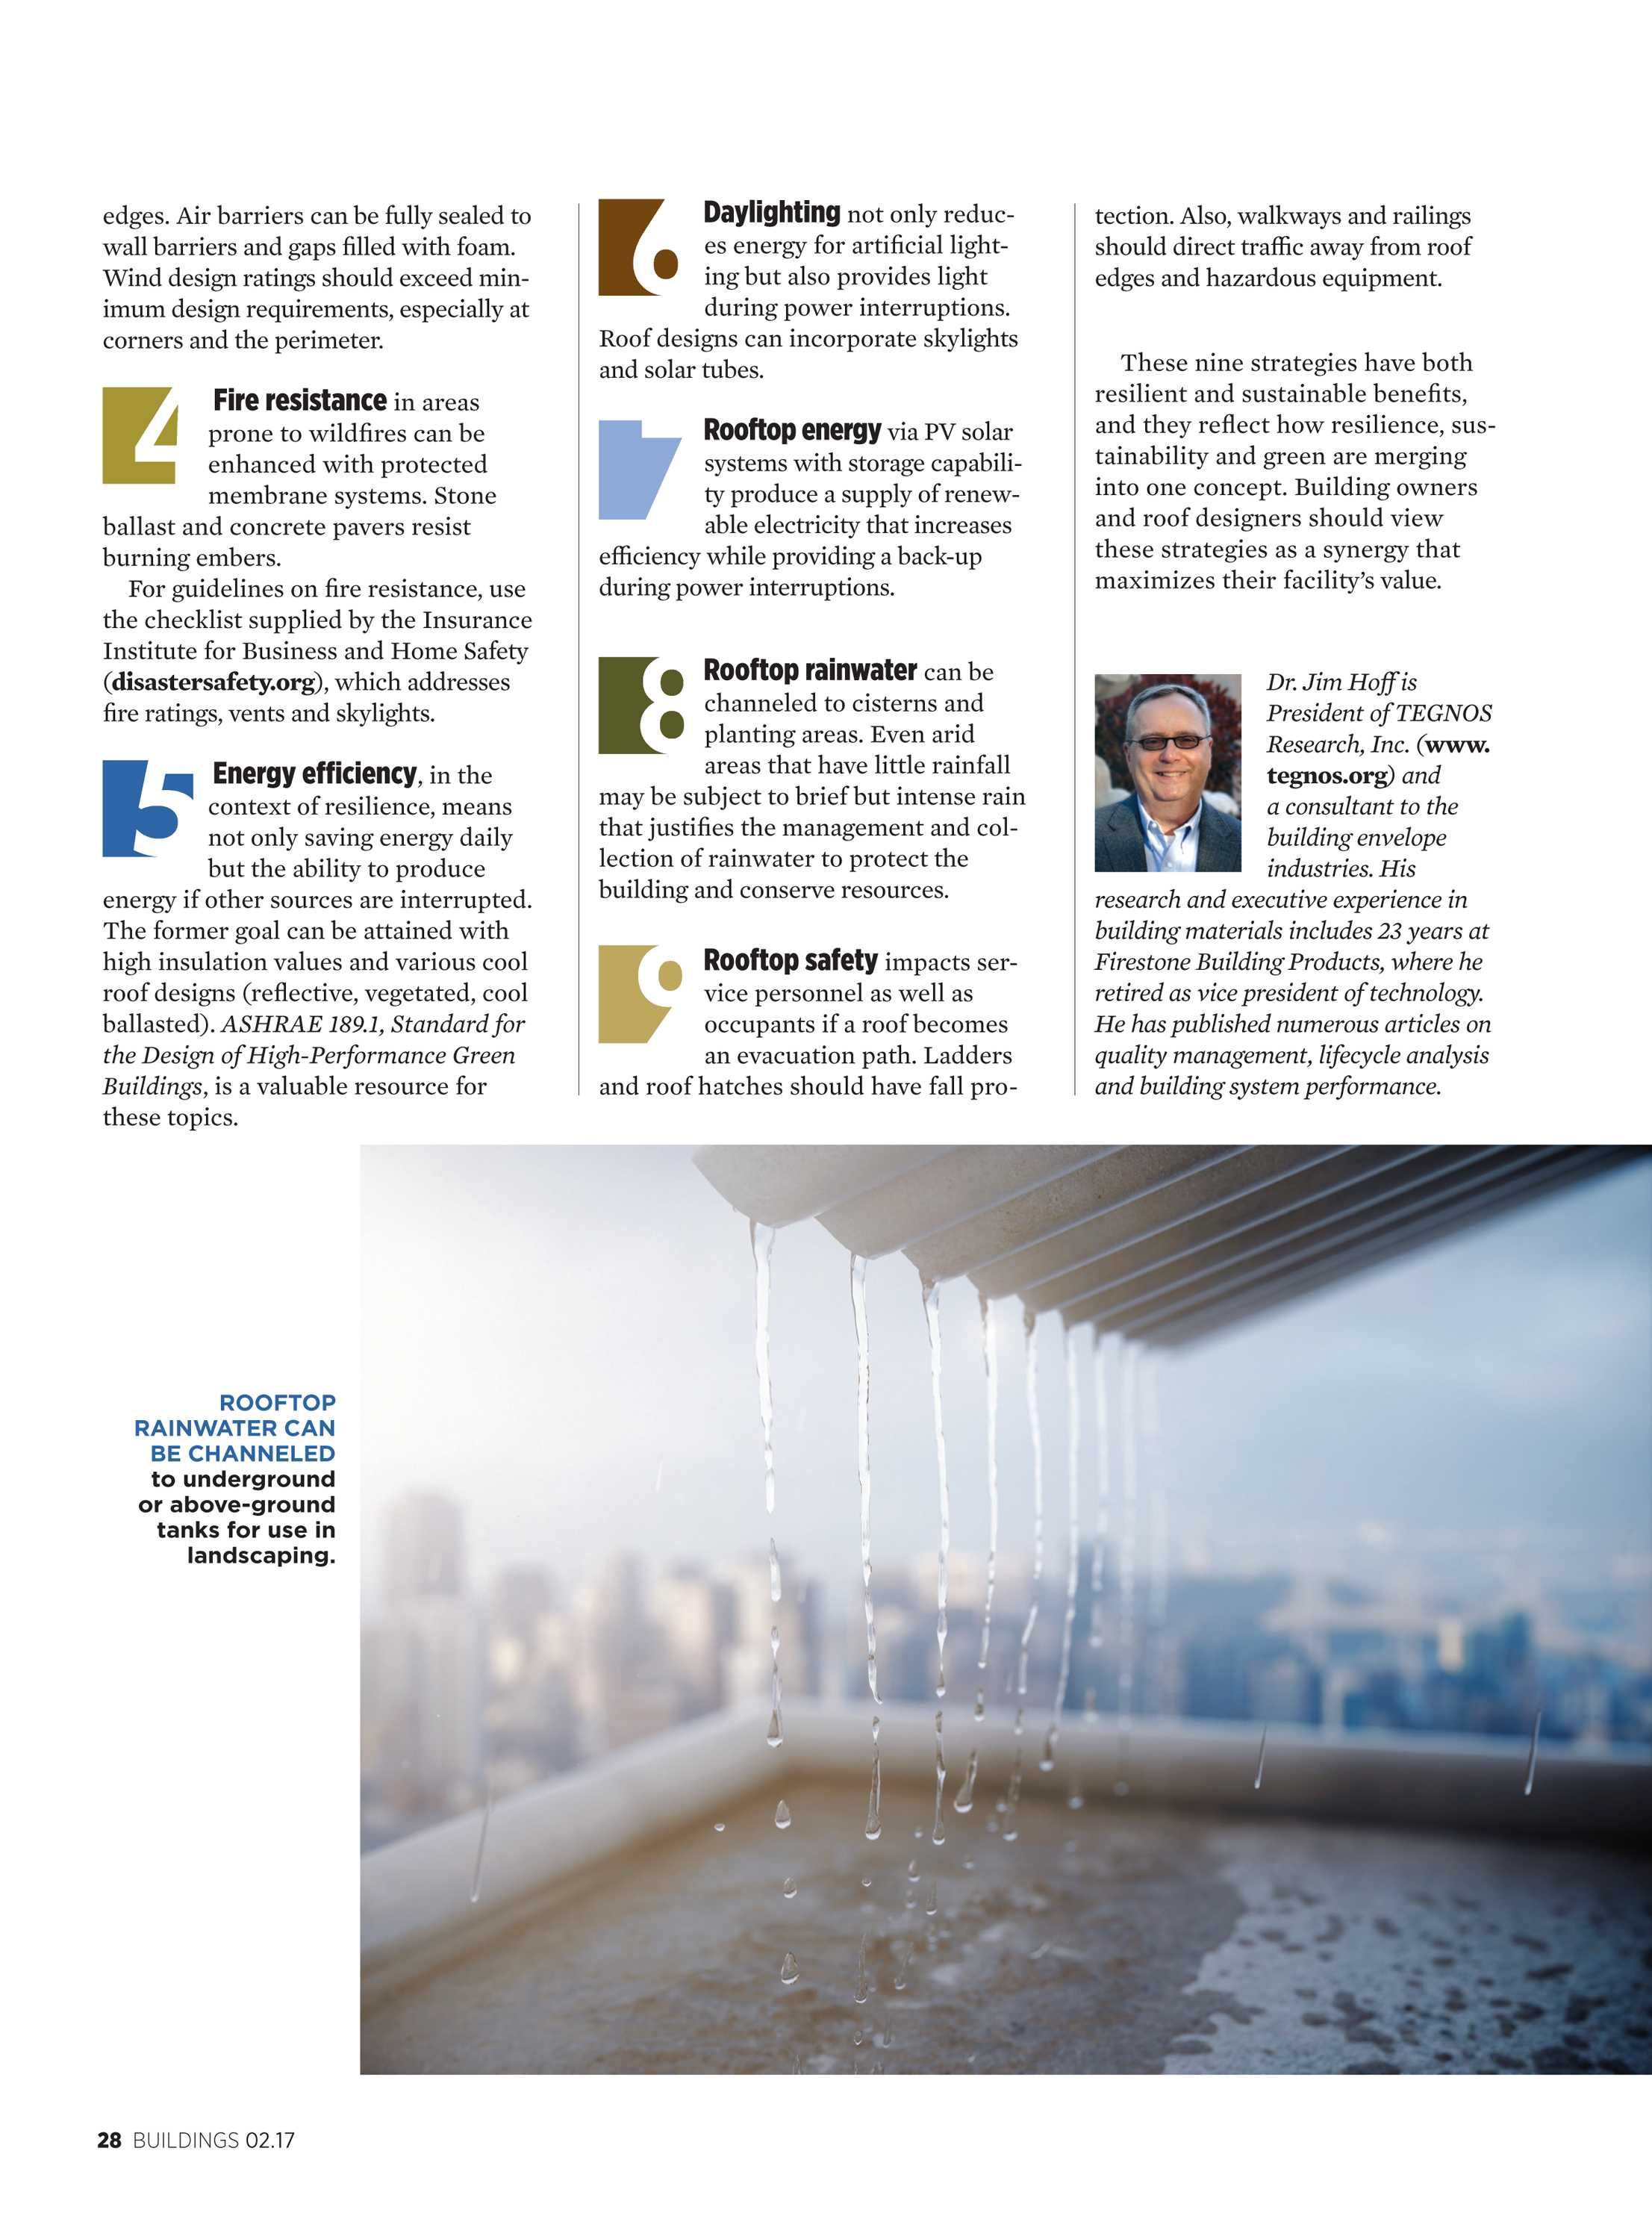 Buildings Magazine - February 2017 - page 28